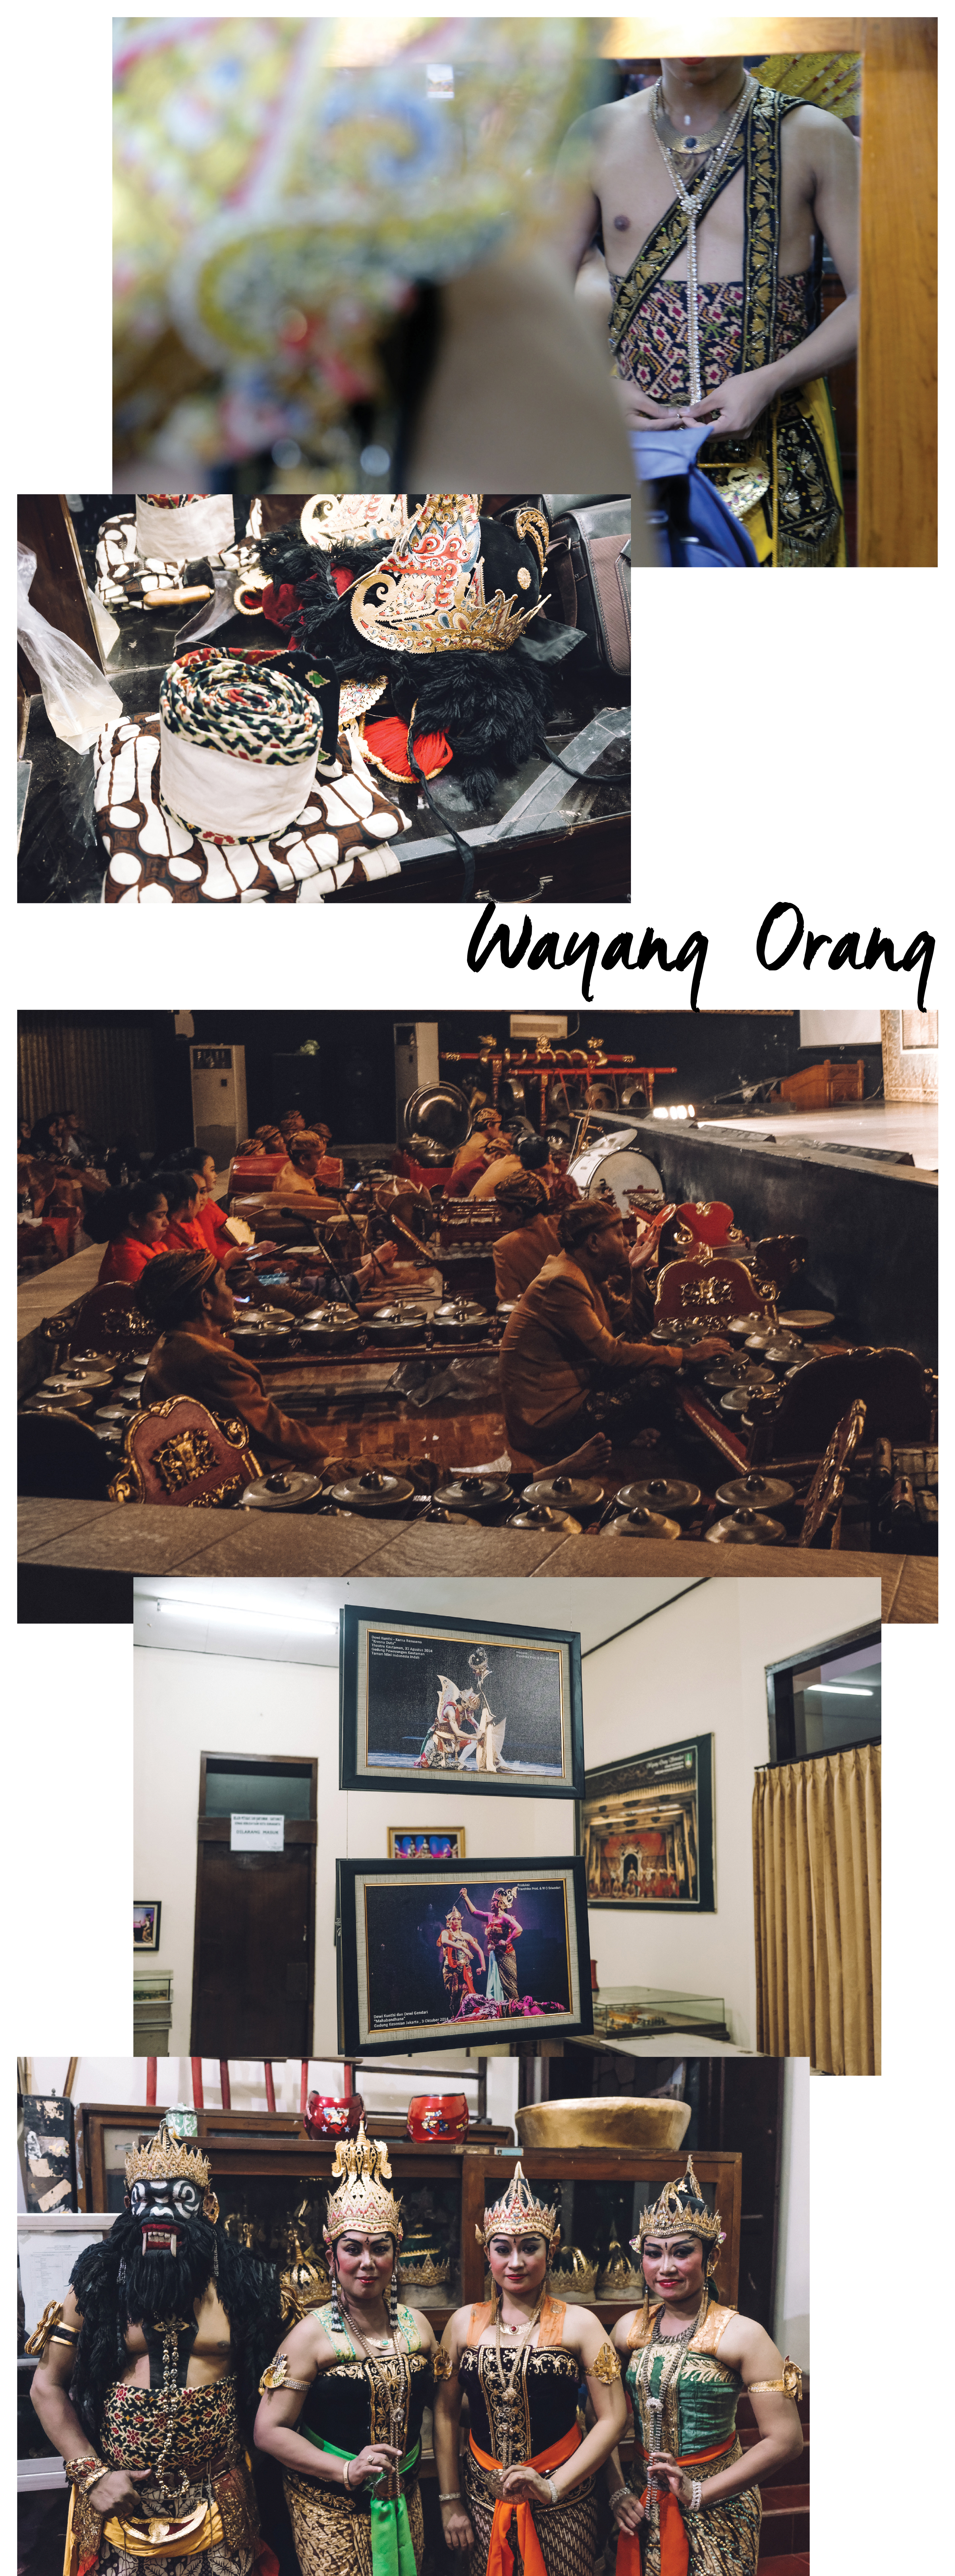 dont miss Wayang Orang while travel in indonesia